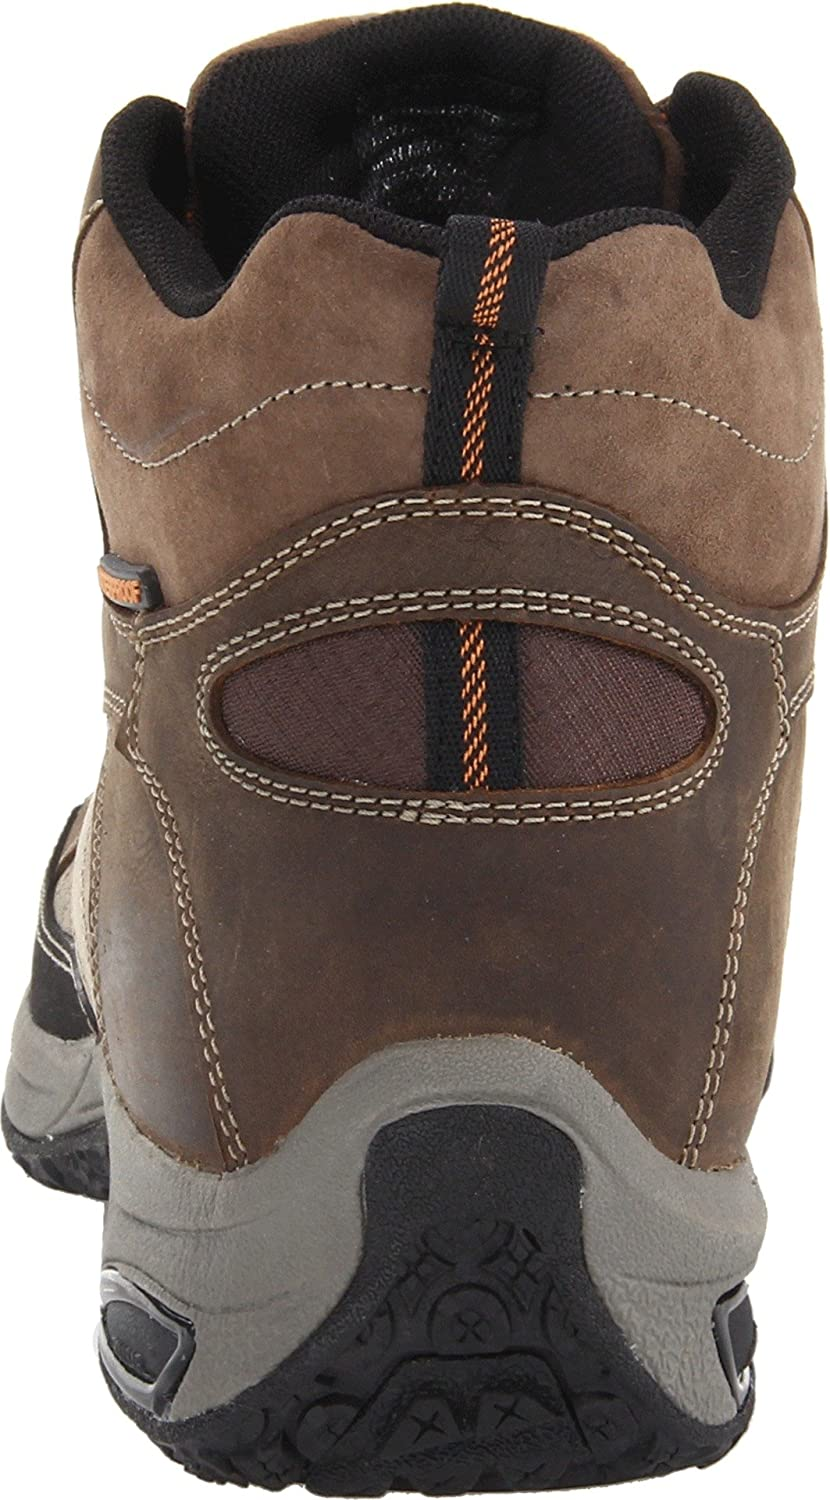 Dunham Men's US Lawrence Waterproof Stiefel,braun,13 4E US Men's 2224ef